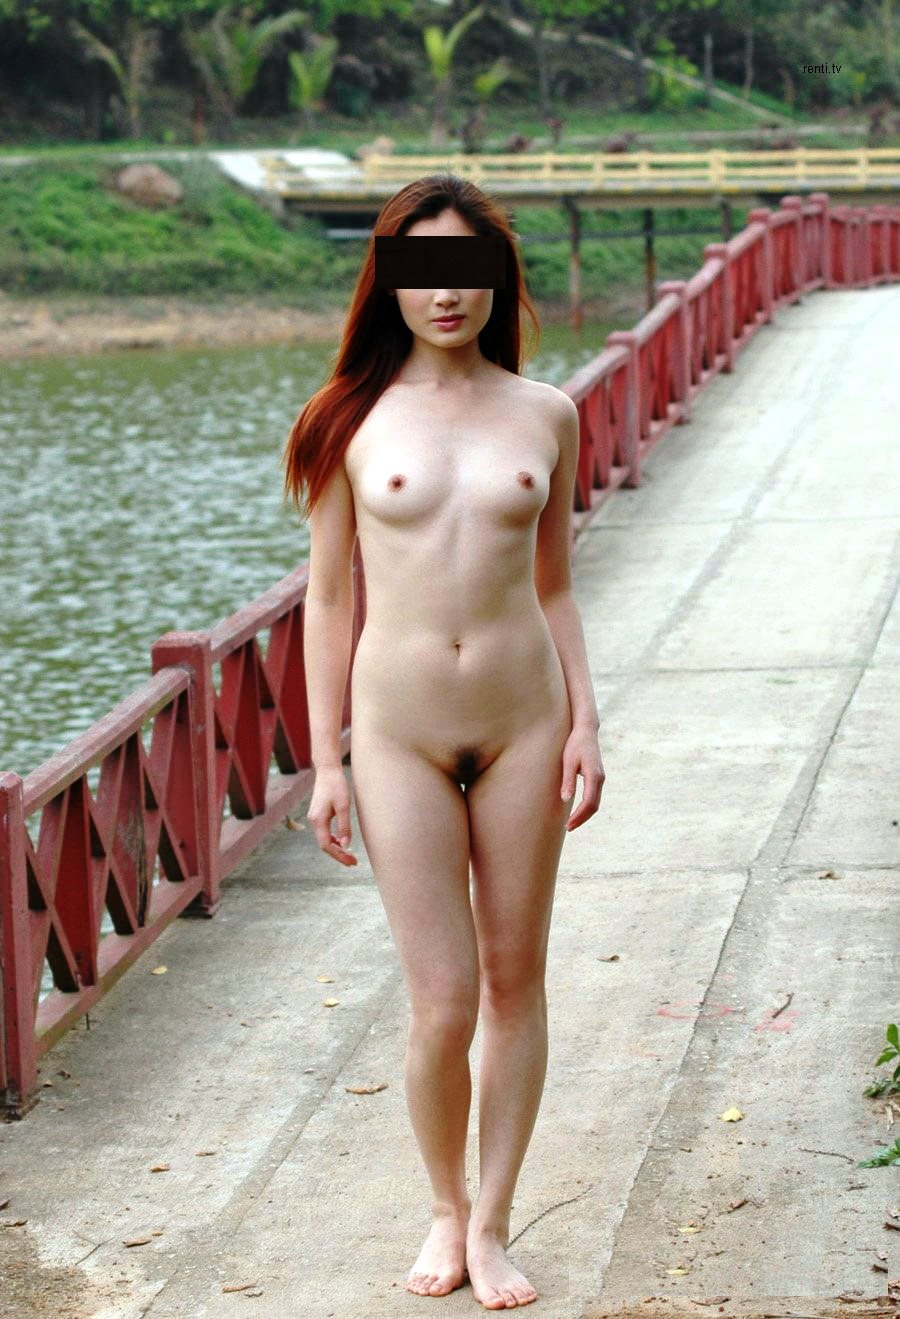 Sweet chinese nudist models, fucked so hard pussy bleeds